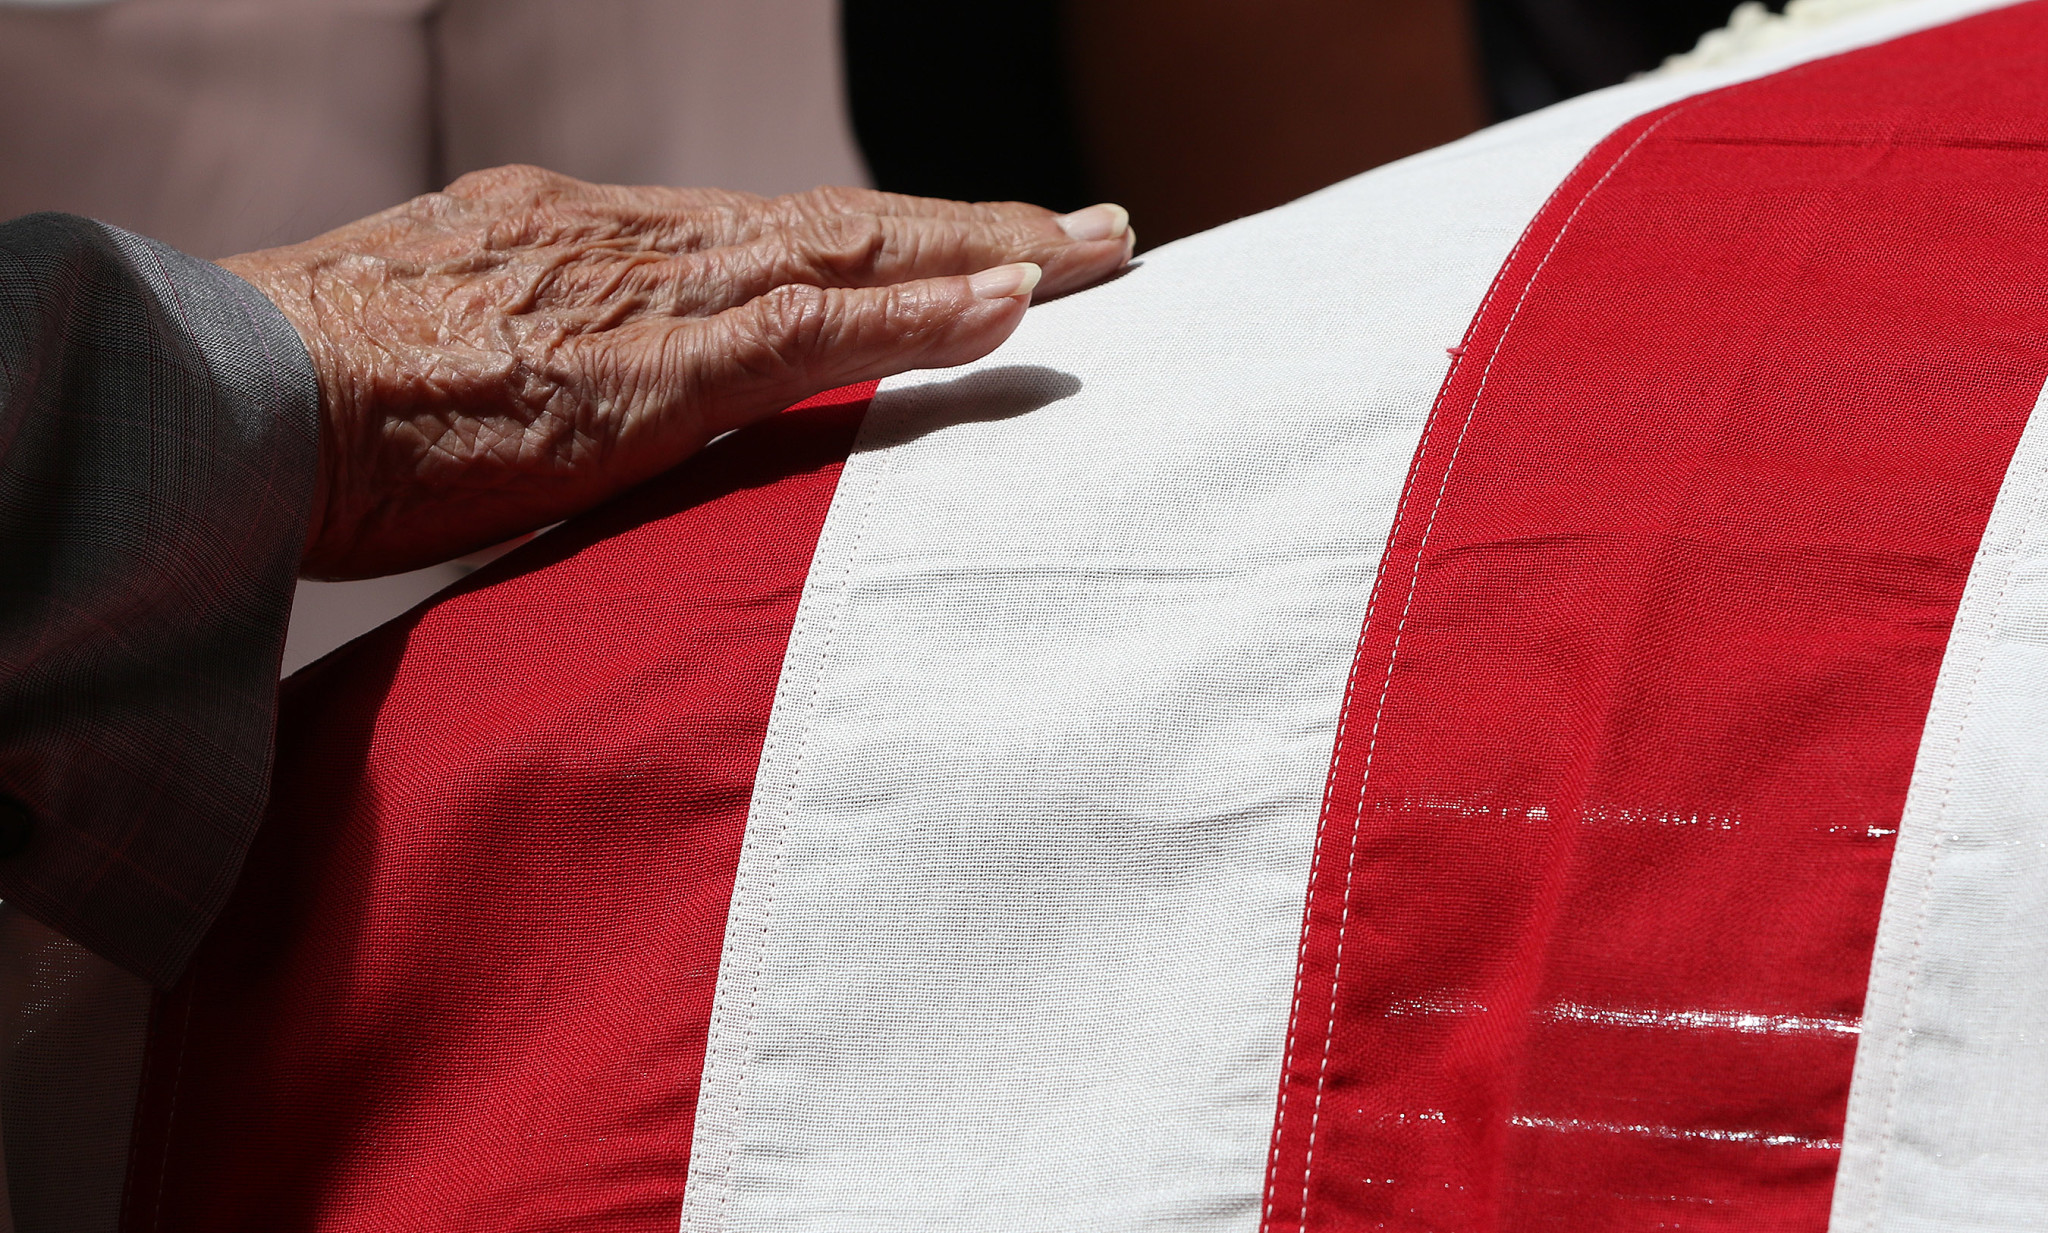 <p>A mourner touches the flag atop Takai's casket in a gentle farewell.</p>